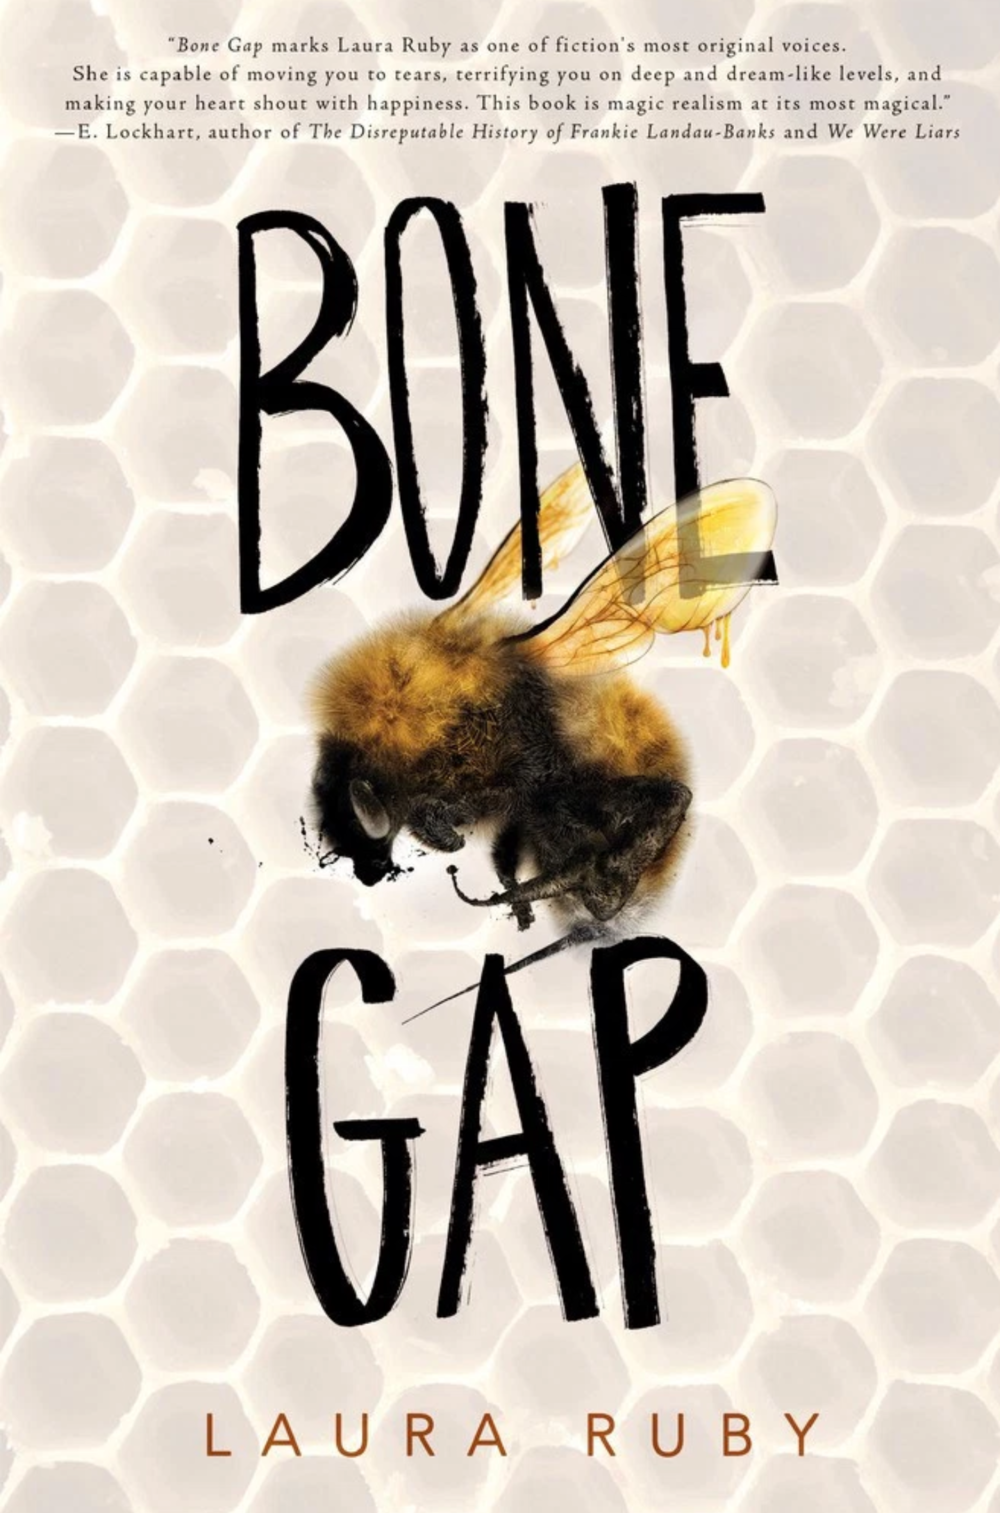 Bone Gap BY Laura Ruby PUBLISHED BY March 3, 2015, Balzer + Bray GENRES: YA FANTASY/Whimsical PAGES: 373 FORMAT: Paperback SOURCE: PURCHASHED PACING: {4/5}